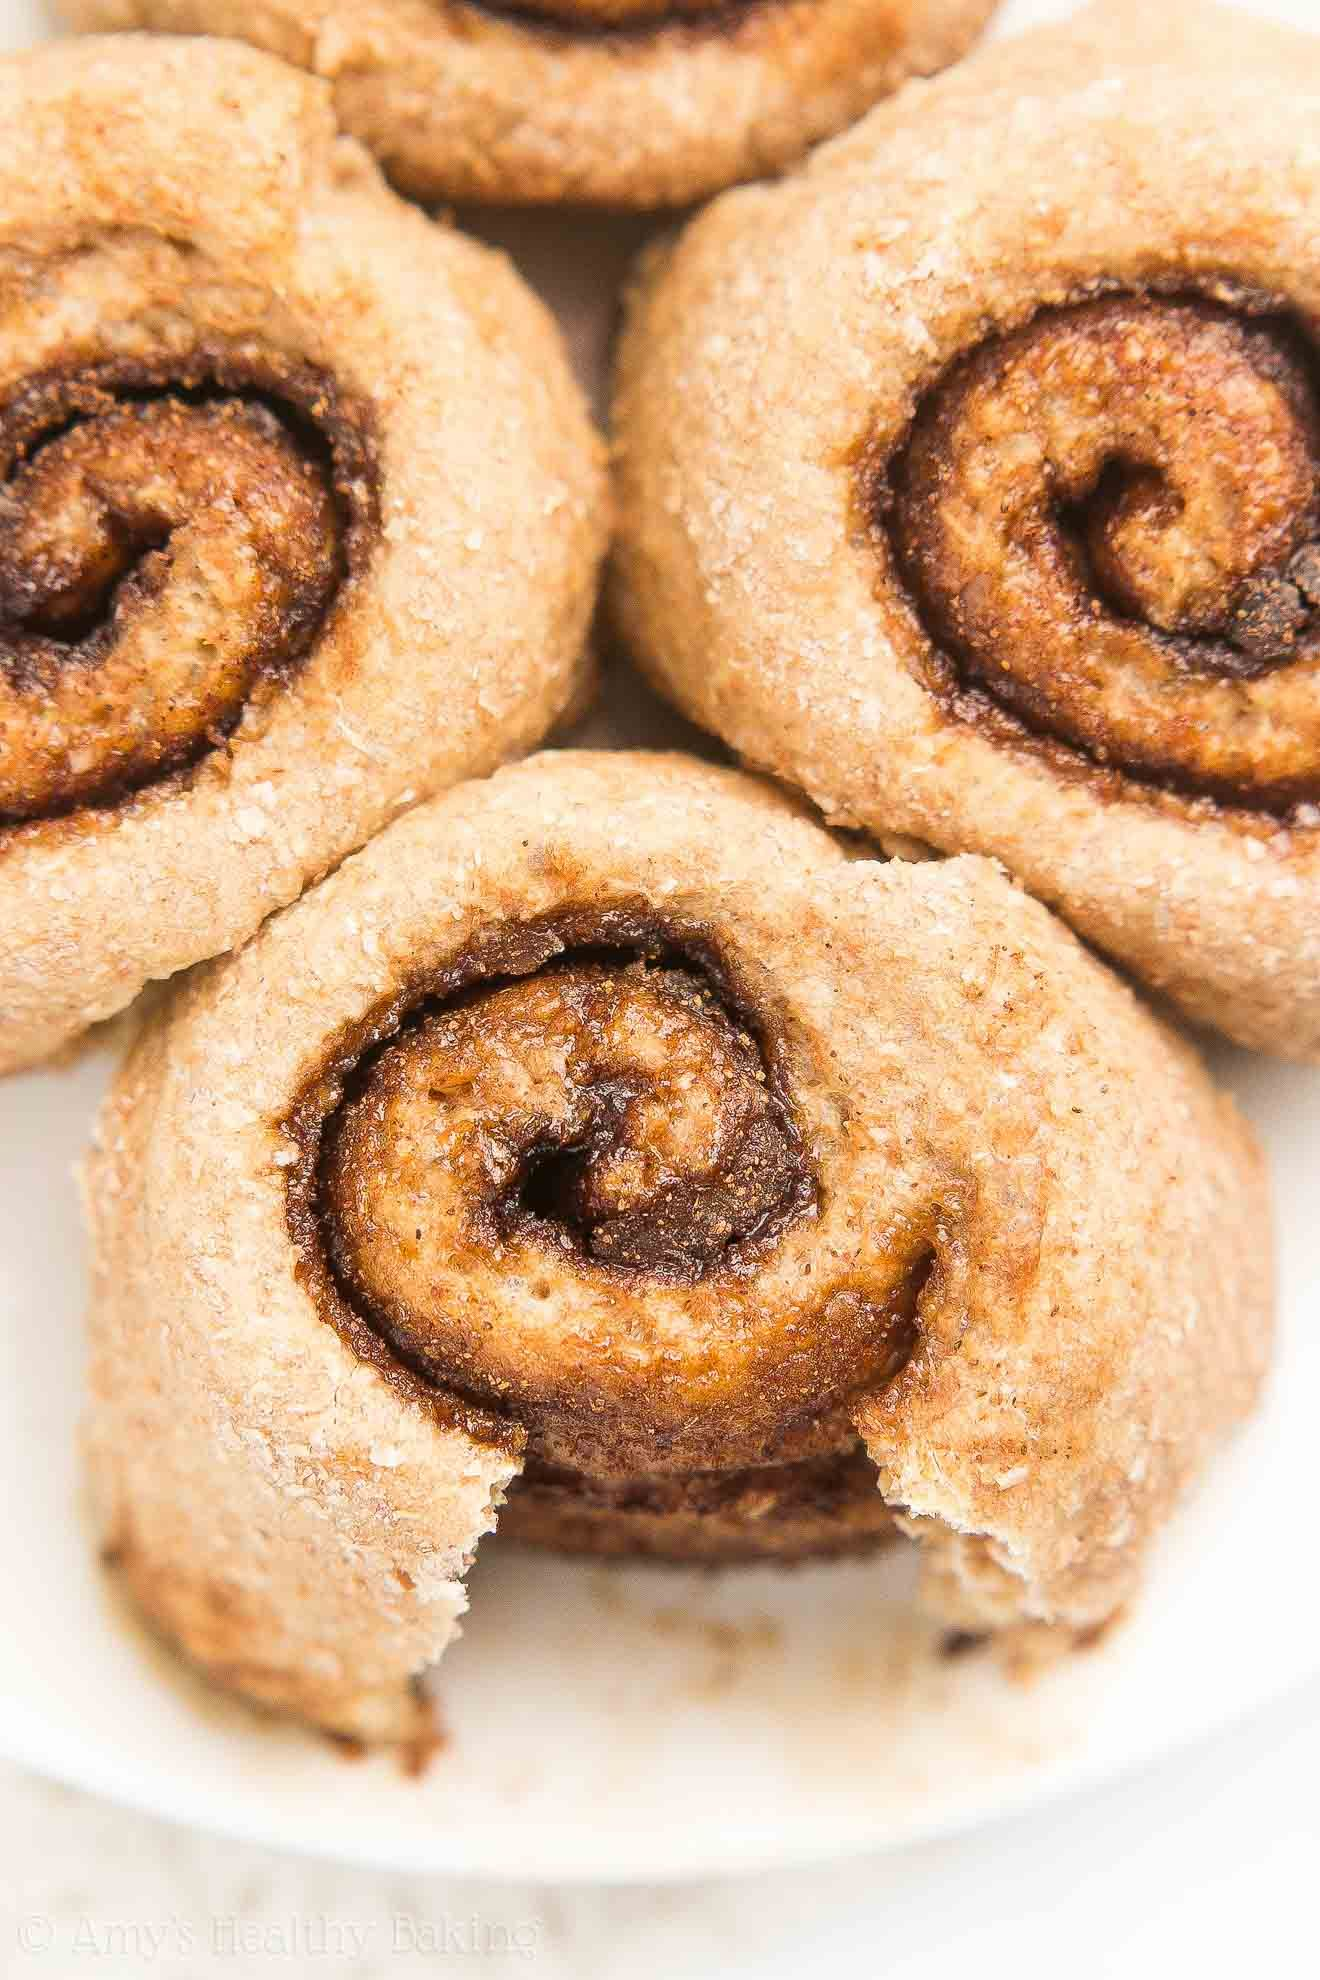 The Ultimate Healthy Mini Cinnamon Rolls Only 56 Calories Tender Dough Gooey Cinnamon Filling Pur Healthy Ice Cream Recipes Mini Cinnamon Rolls Recipes